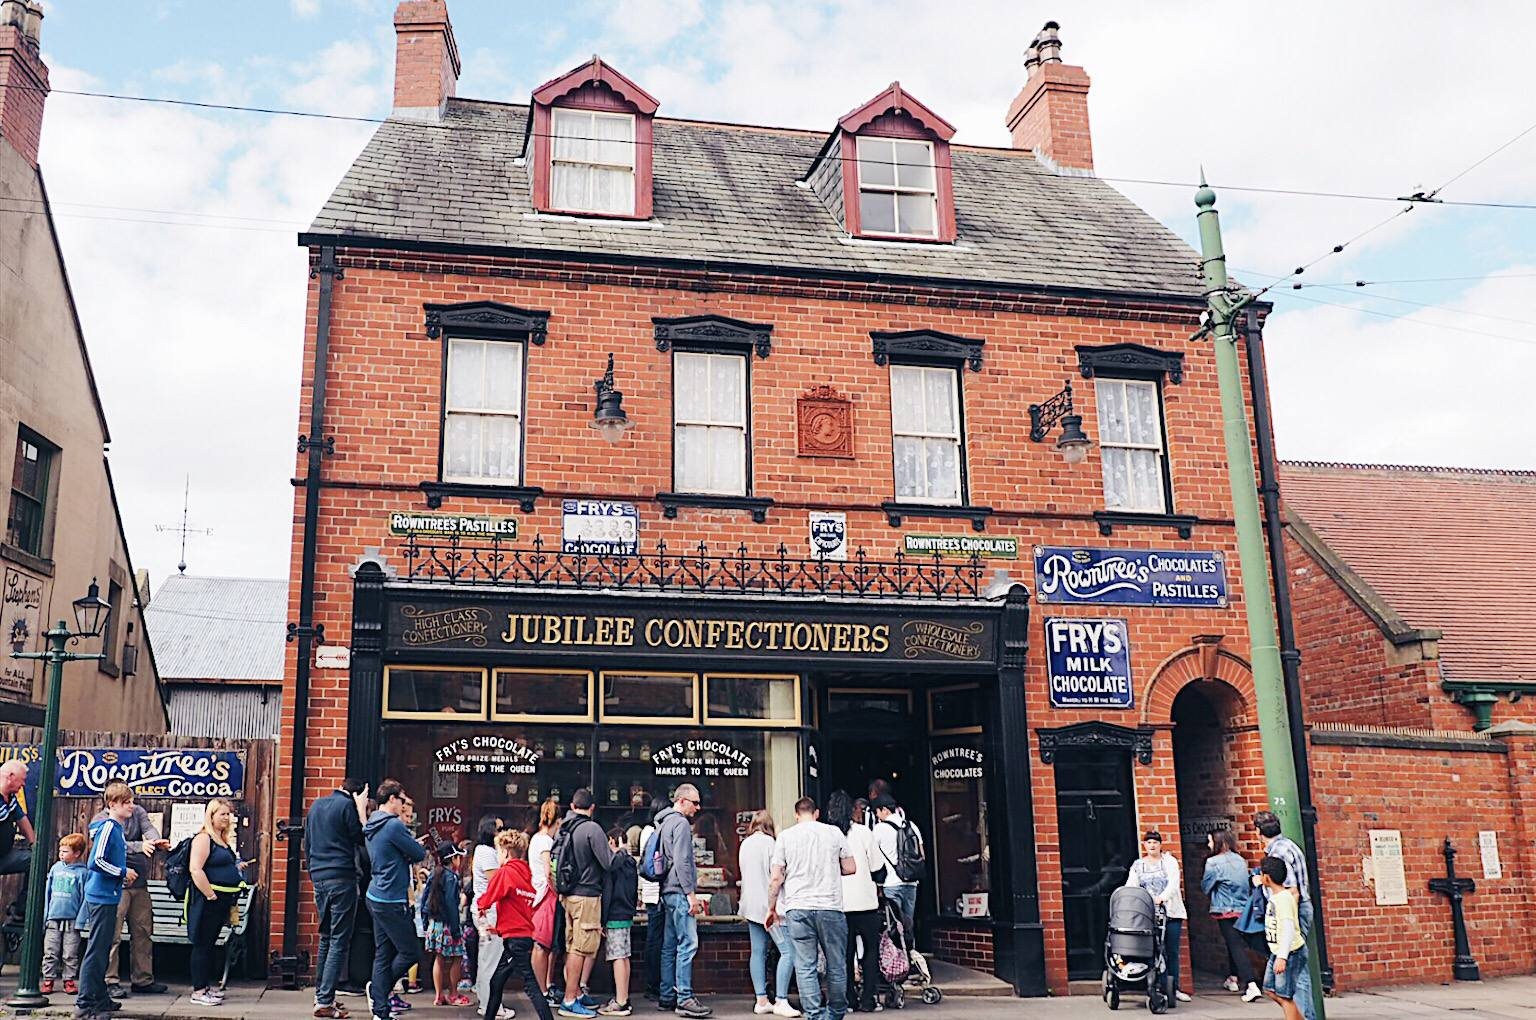 Jubilee Confectioners: Old fashioned sweet shop at Beamish